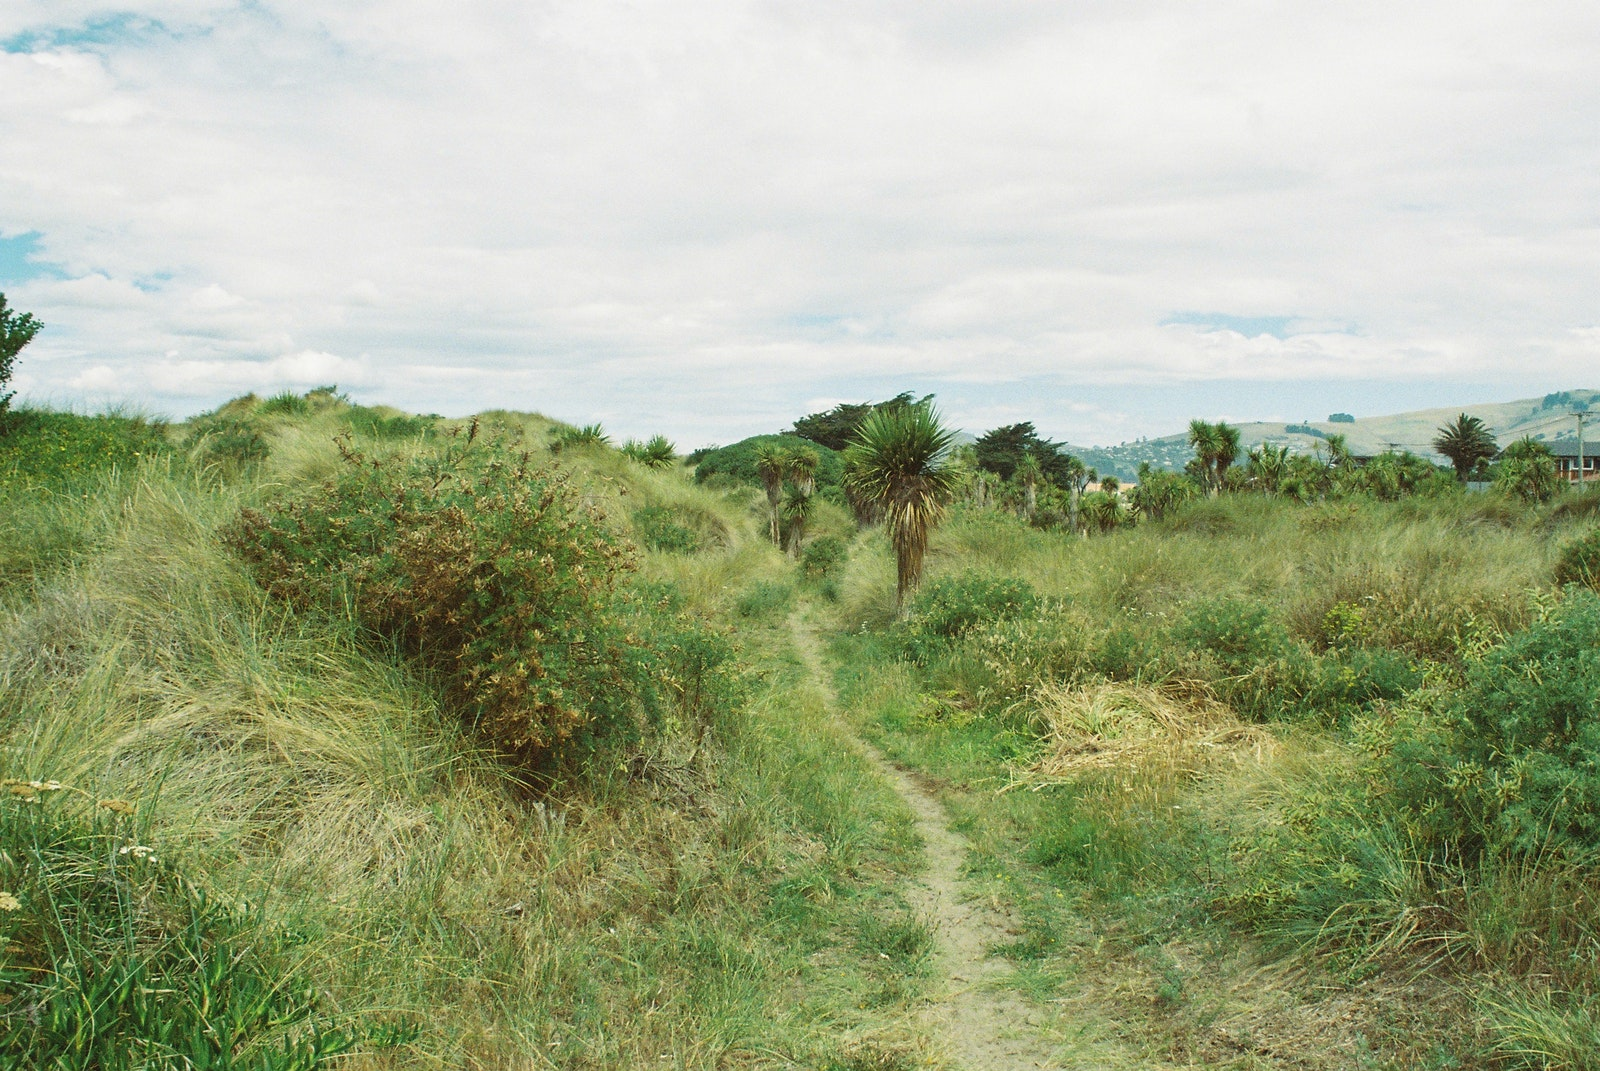 A path through sand dunes covered in grasses